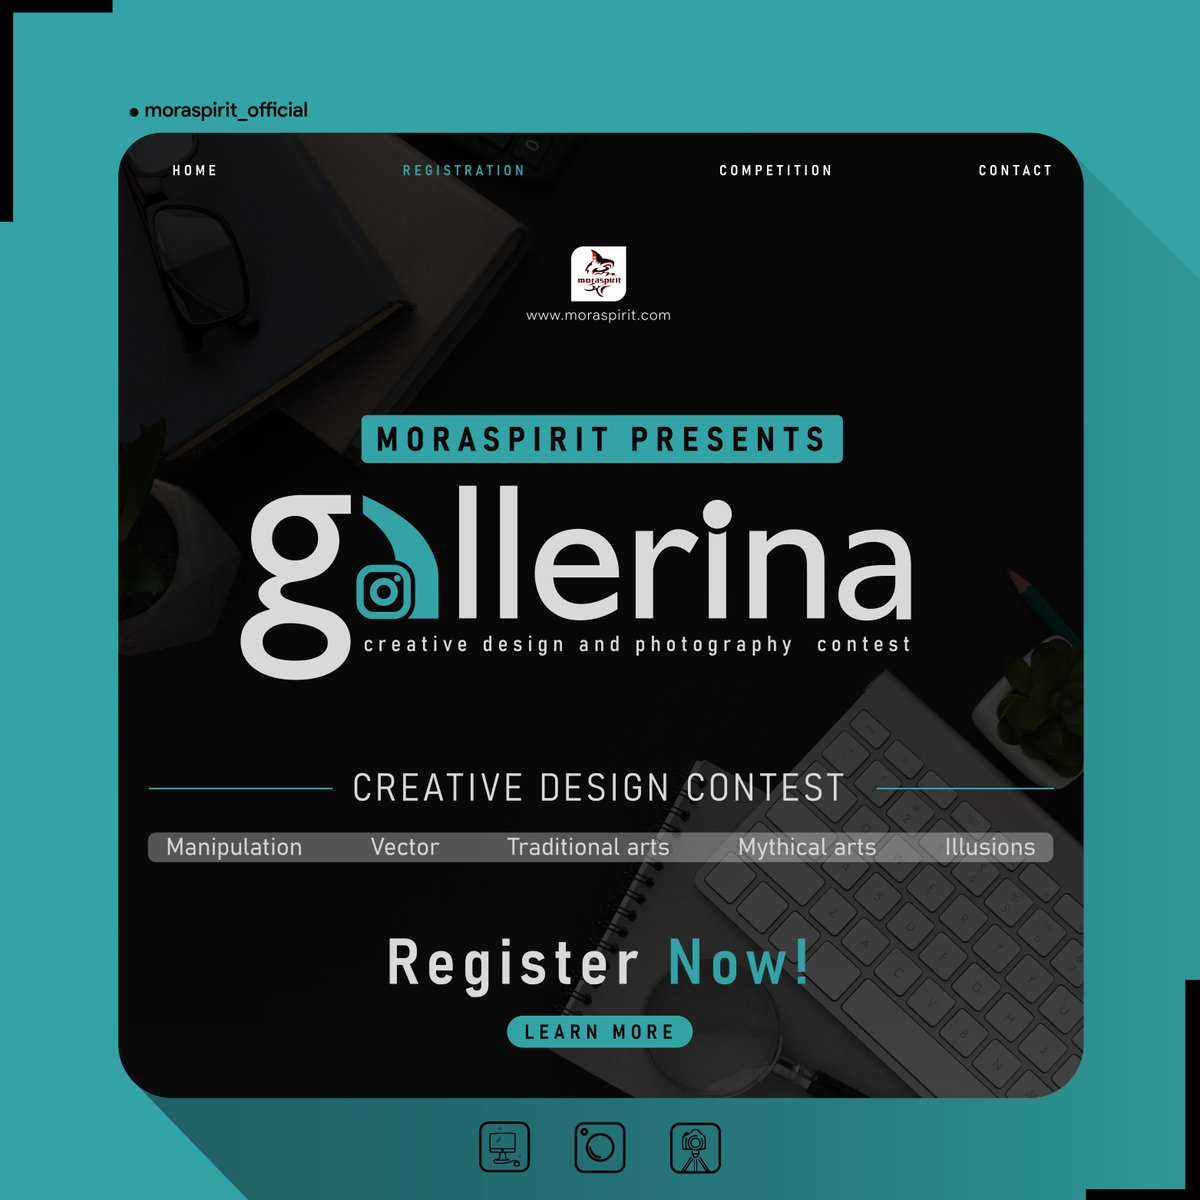 'Gallerina' is the ultimate creative design contest, proudly presented by MoraSpirit to bestow the limelight to avid innovative minds. Contest will be conducted via Instagram and will be open for anyone to take part. So, hurry up. Register before 7th july. https://t.co/XcoFnhgeIu https://t.co/5K7V8fM1qs